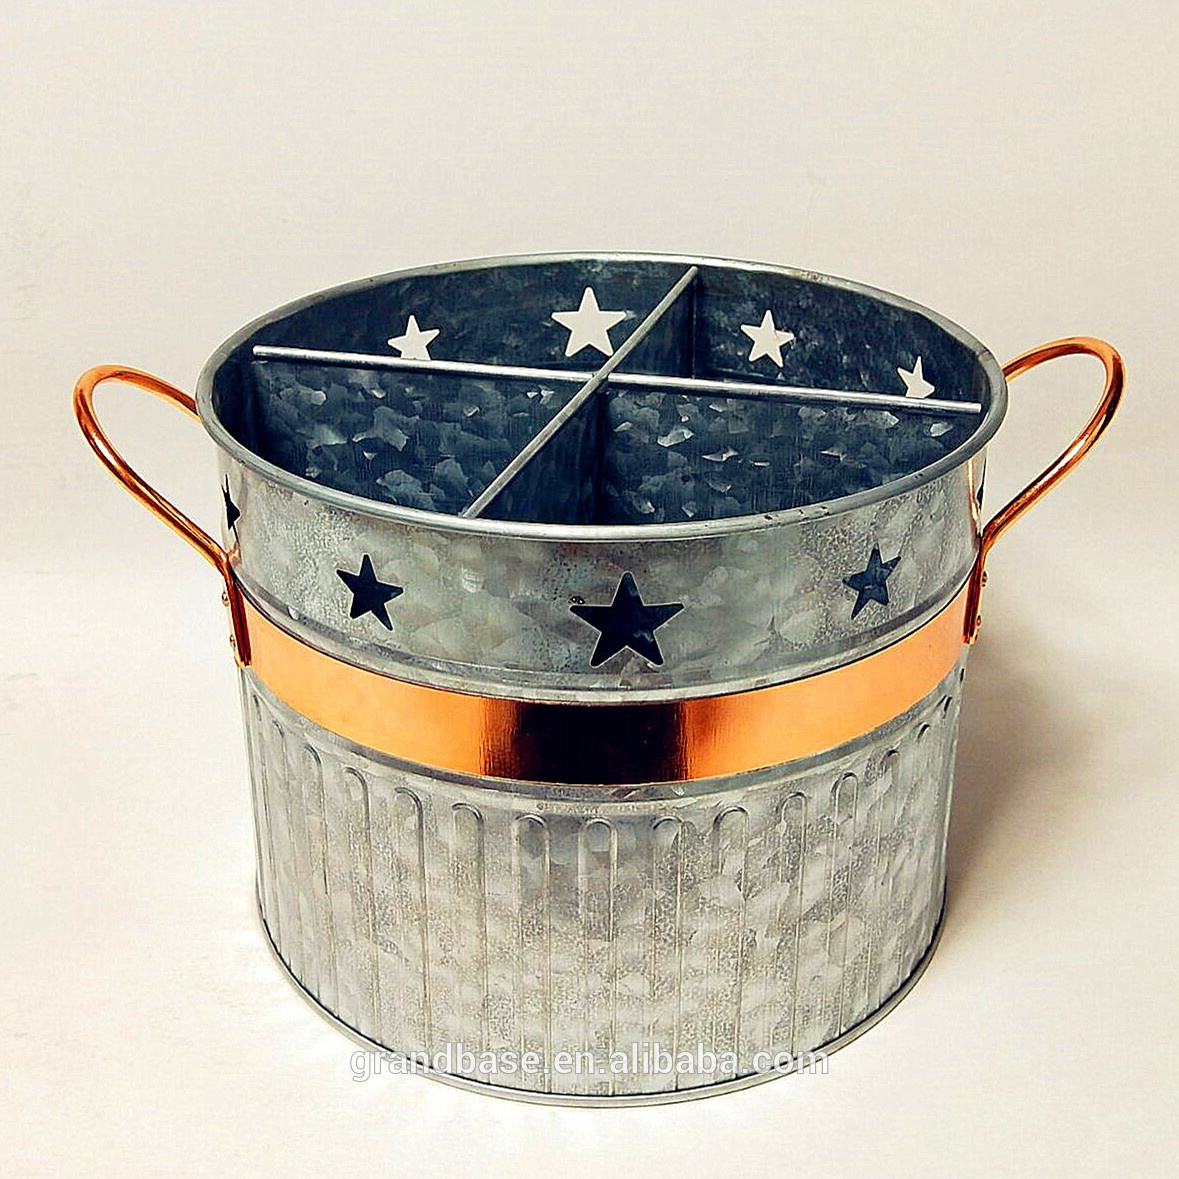 Cut-out start design galvanized metal utensil holder / bucket / Canister with copper band and handles